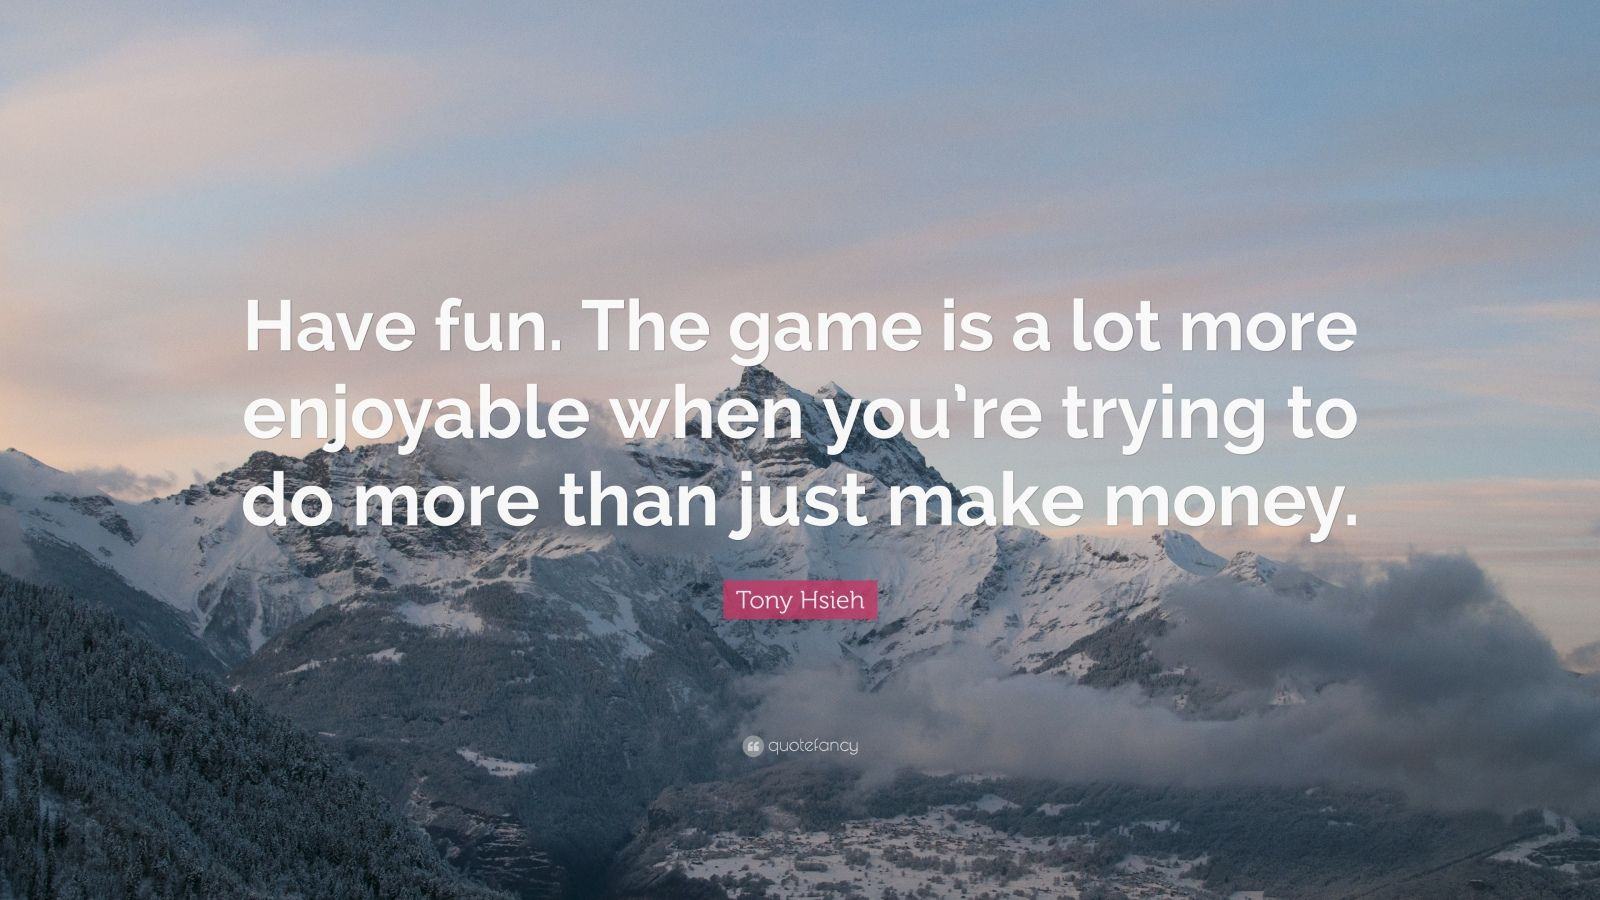 """Tony Hsieh Quote: """"Have fun. The game is a lot more enjoyable when you're trying to do more than just make money."""""""